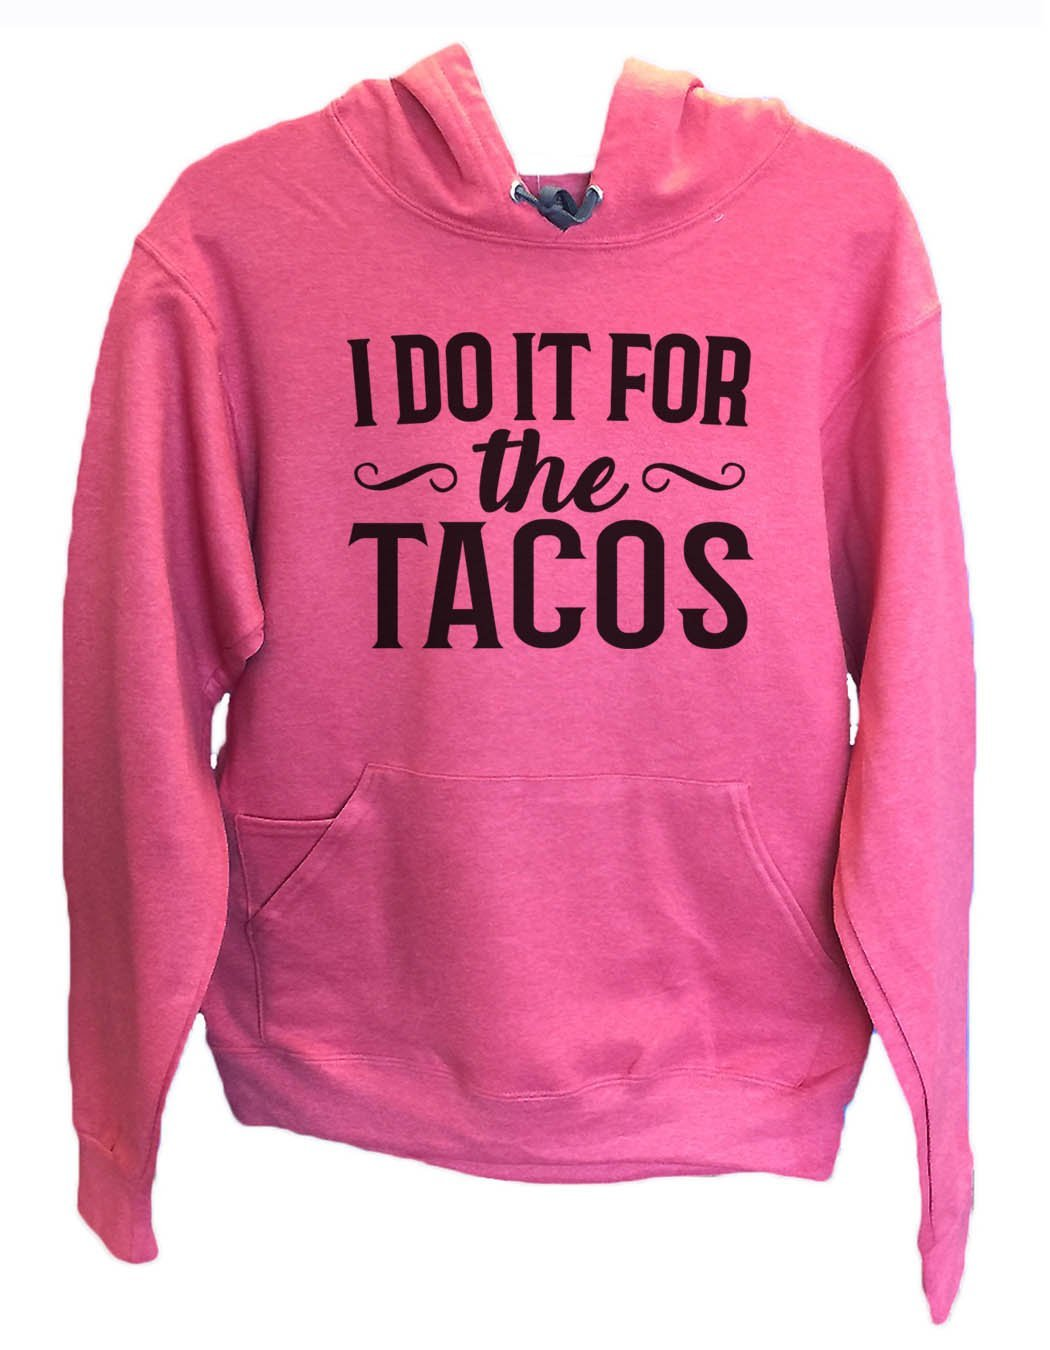 UNISEX HOODIE - I Do It For The Tacos - FUNNY MENS AND WOMENS HOODED SWEATSHIRTS - 2121 Funny Shirt Small / Cranberry Red